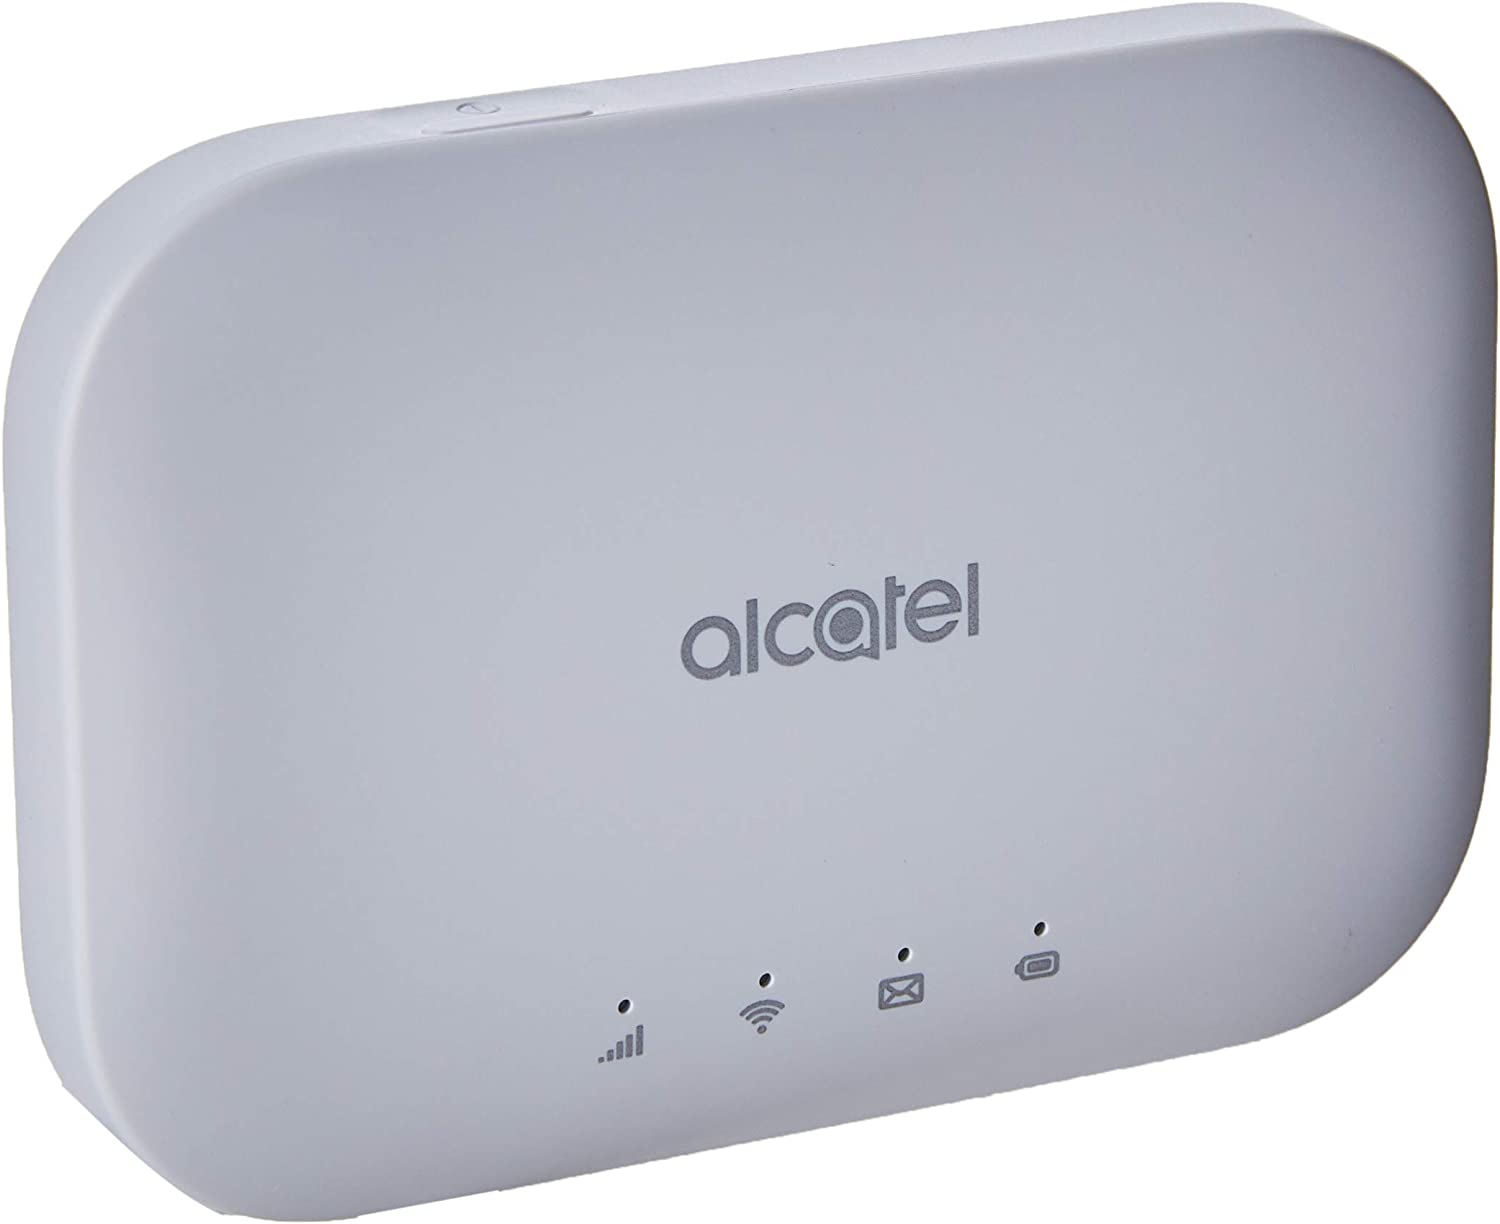 ALCATEL MW70K - Router WiFi 4G LTE Cat 7 (300/100 Mbps) máx. 32 usuarios